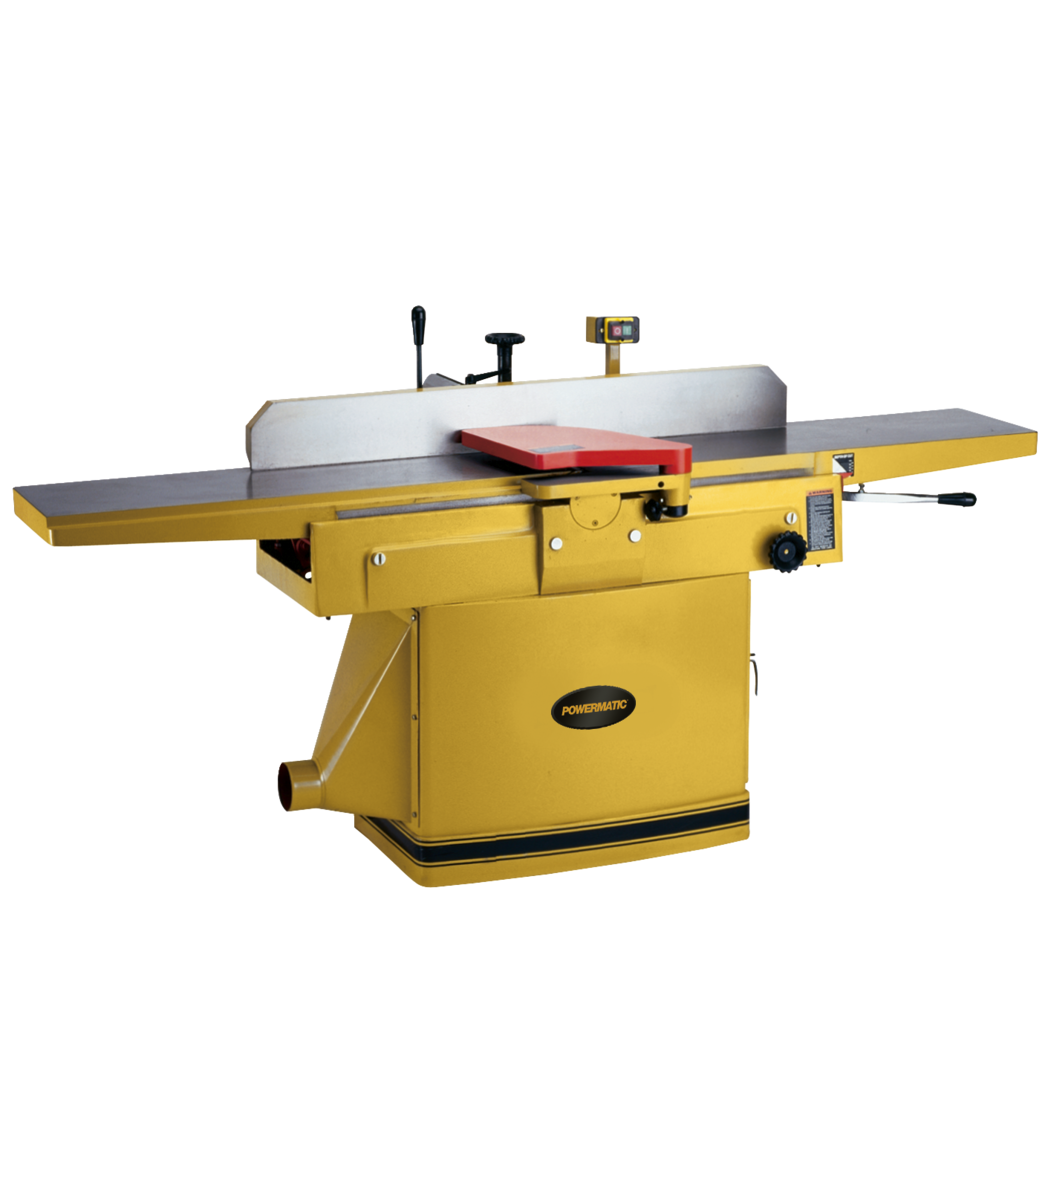 1285 Jointer, 3HP 1PH 230V